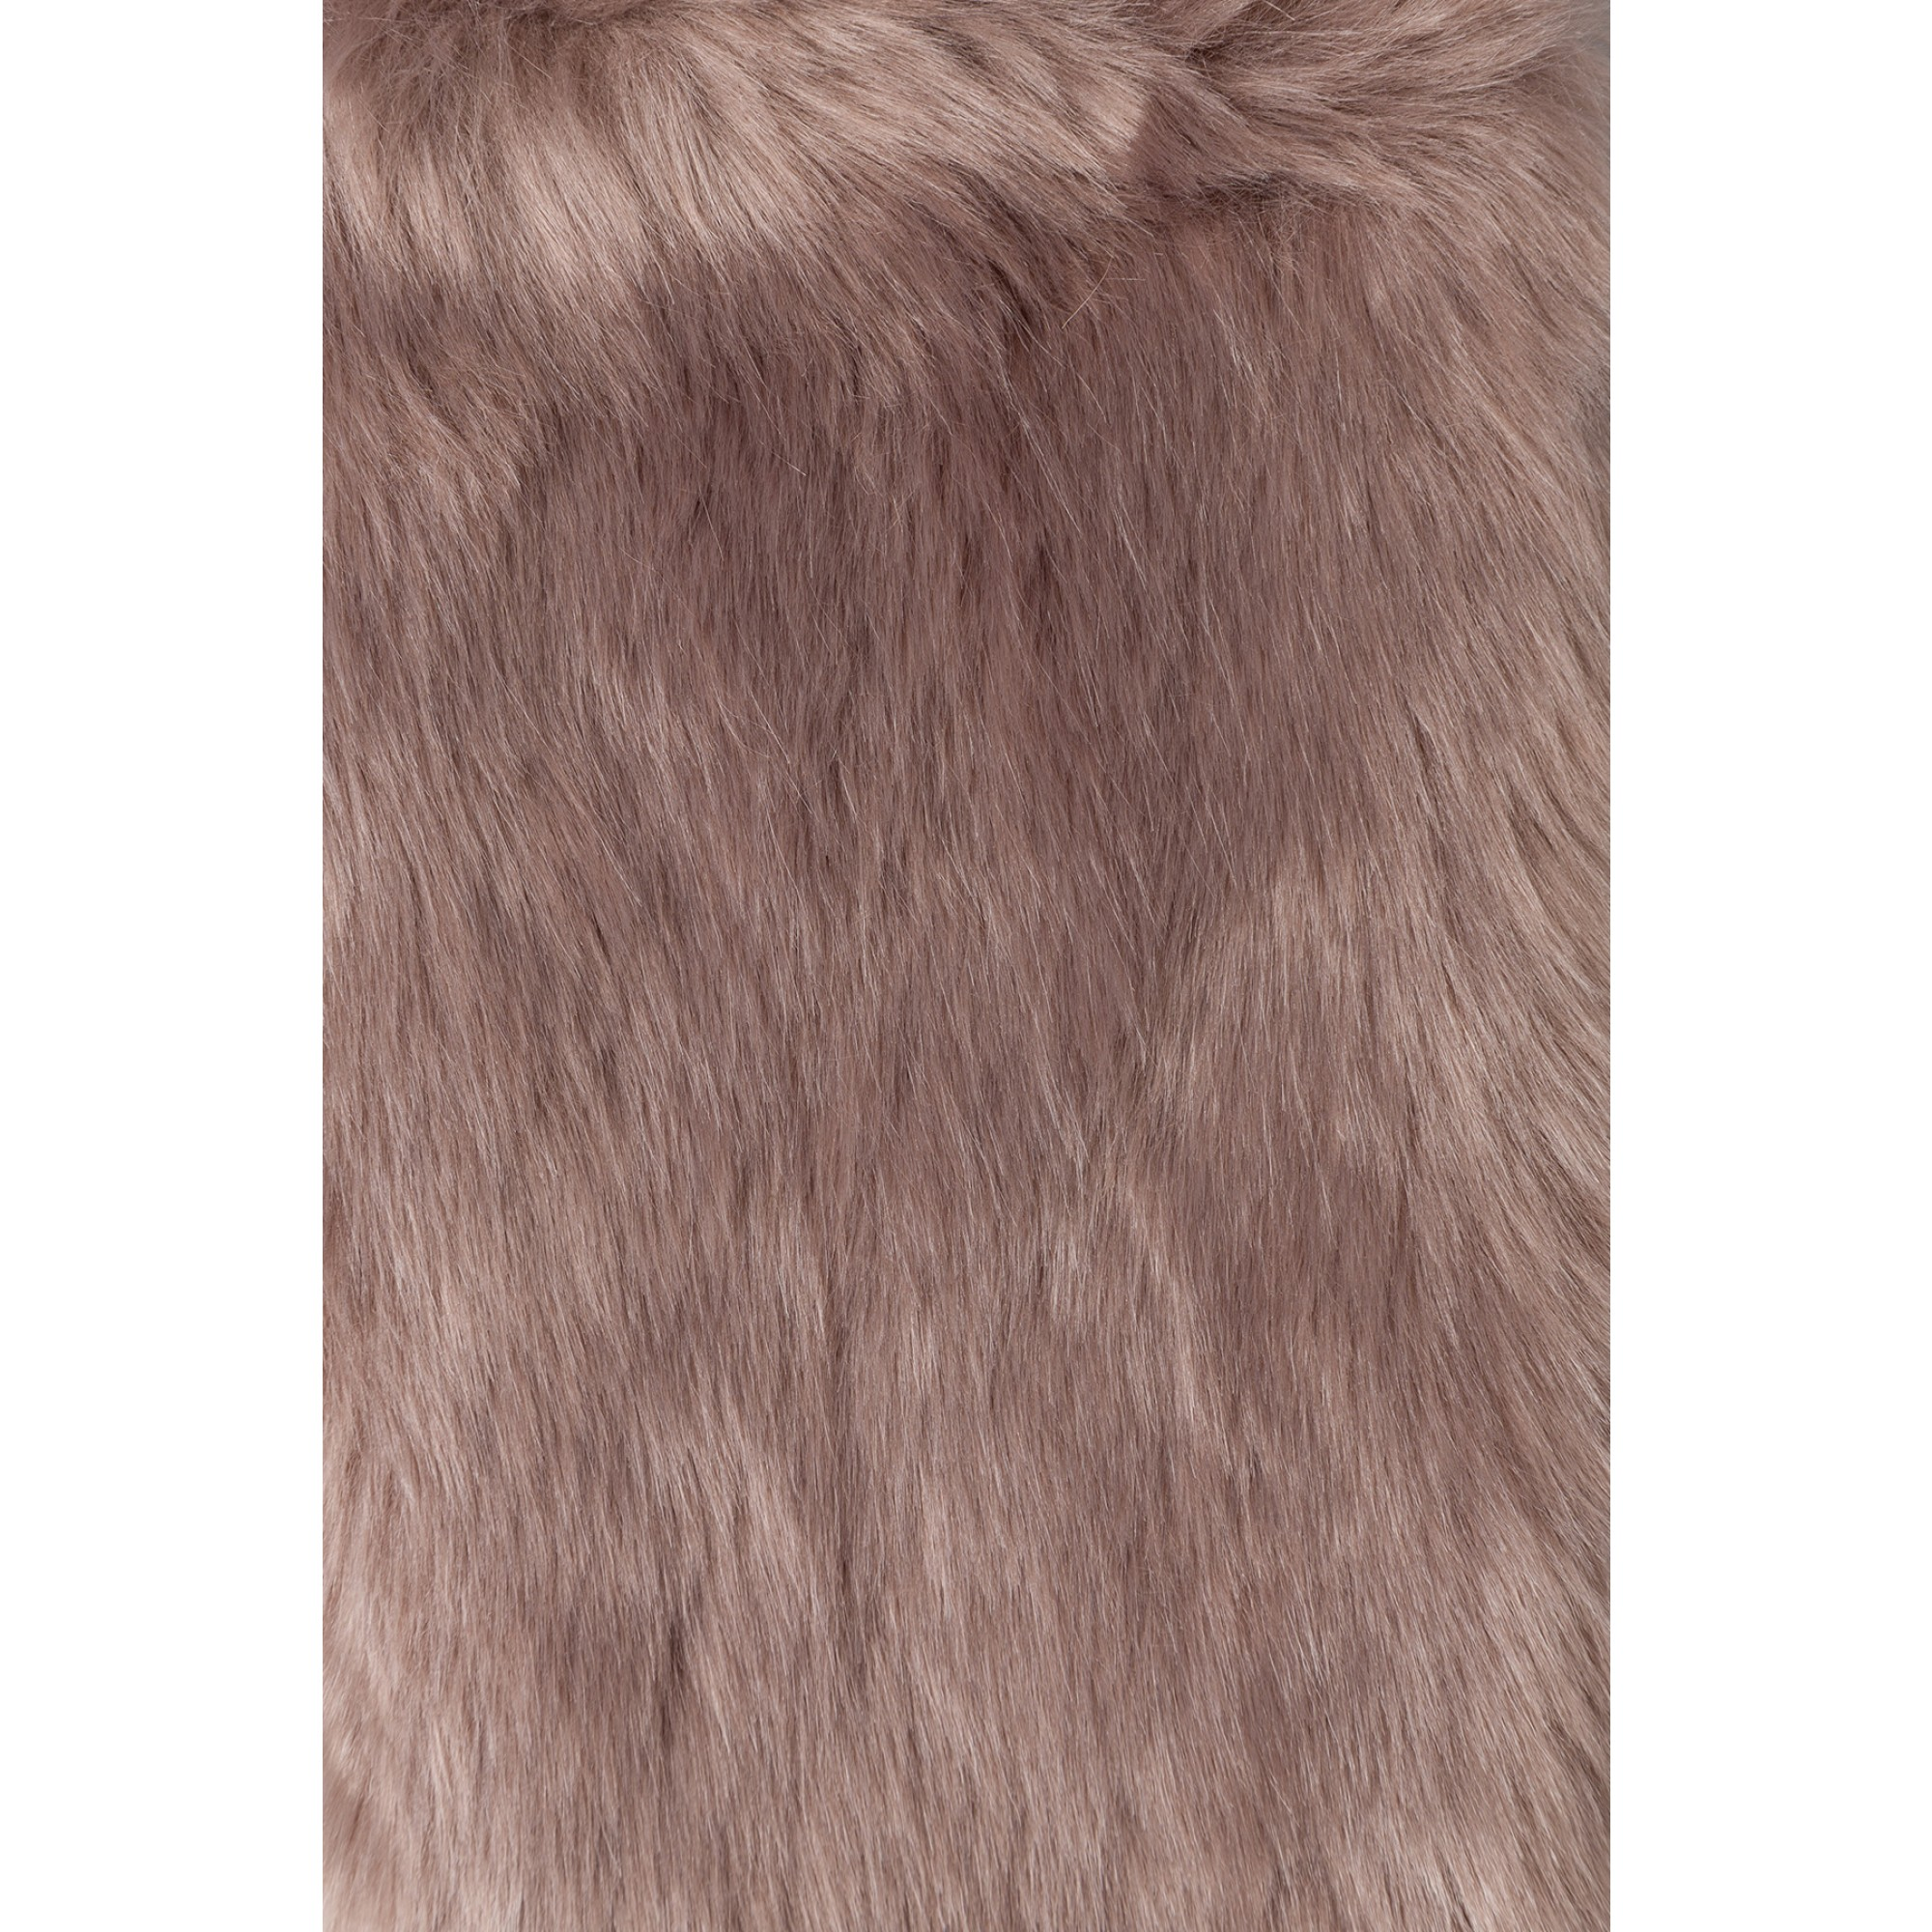 Fake-Fur-Kragen, taupe 85658080-0800 2